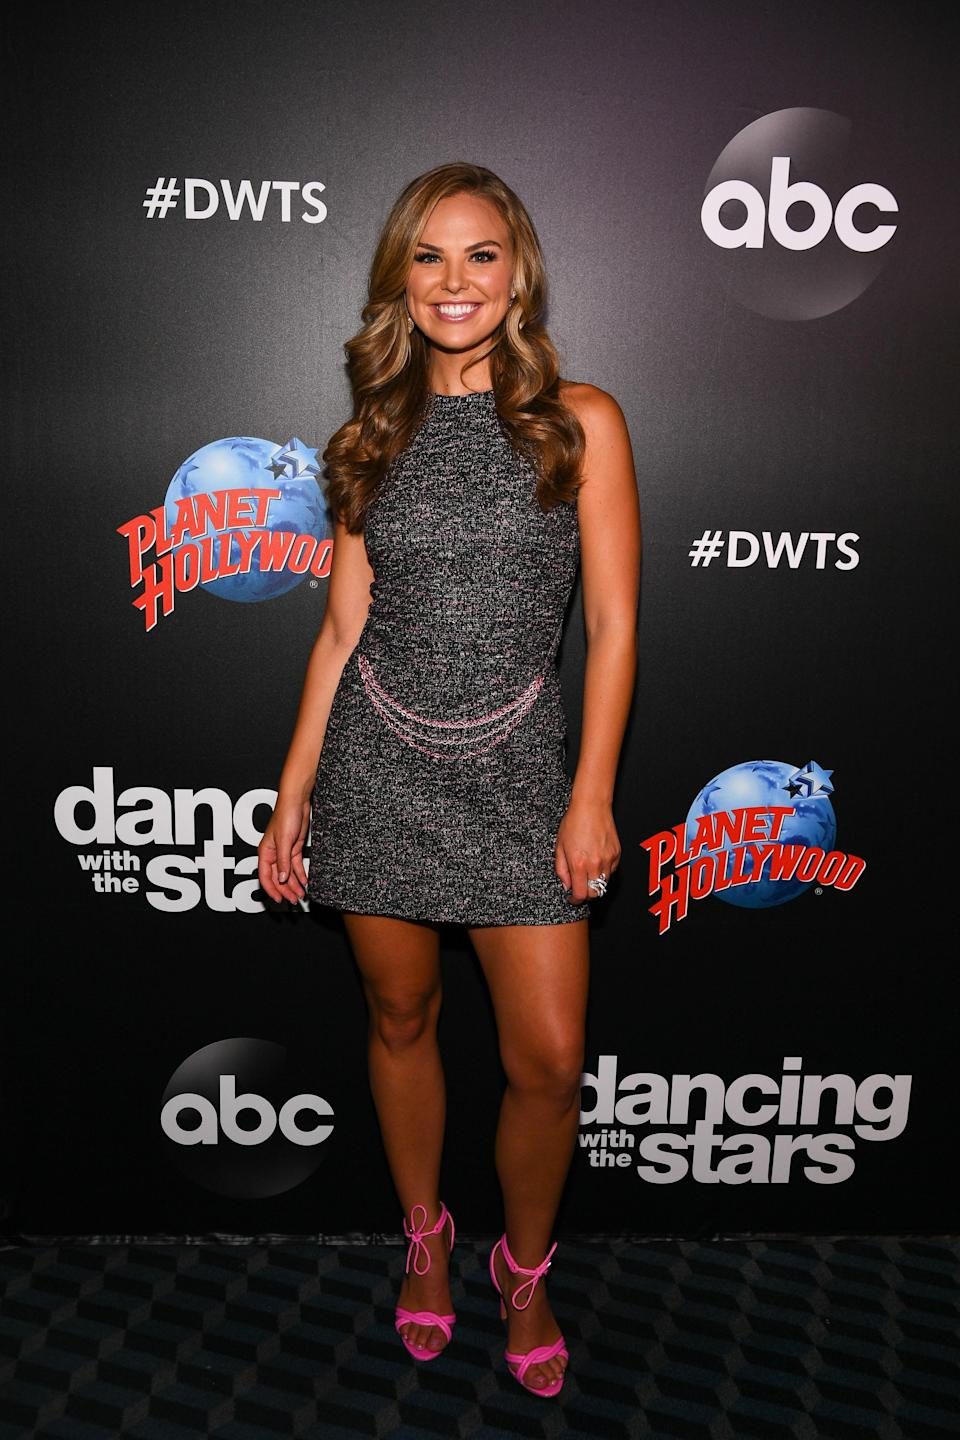 """Brown was confirmed as part of the season-28 cast on <em>Good Morning America</em> on Tuesday, August 20. """"I'm so excited. I want a fresh start, something I can, you know, go all in with emotionally, physically, spiritually, and I think dance is something that I can do that with,"""" she <a href=""""https://www.cheatsheet.com/entertainment/dancing-with-the-stars-announces-its-celebs-for-season-28-and-you-wont-believe-whos-on-the-list.html/"""" rel=""""nofollow noopener"""" target=""""_blank"""" data-ylk=""""slk:said"""" class=""""link rapid-noclick-resp"""">said</a> on <em>GMA.</em> """"I just hope it ends a little differently."""""""